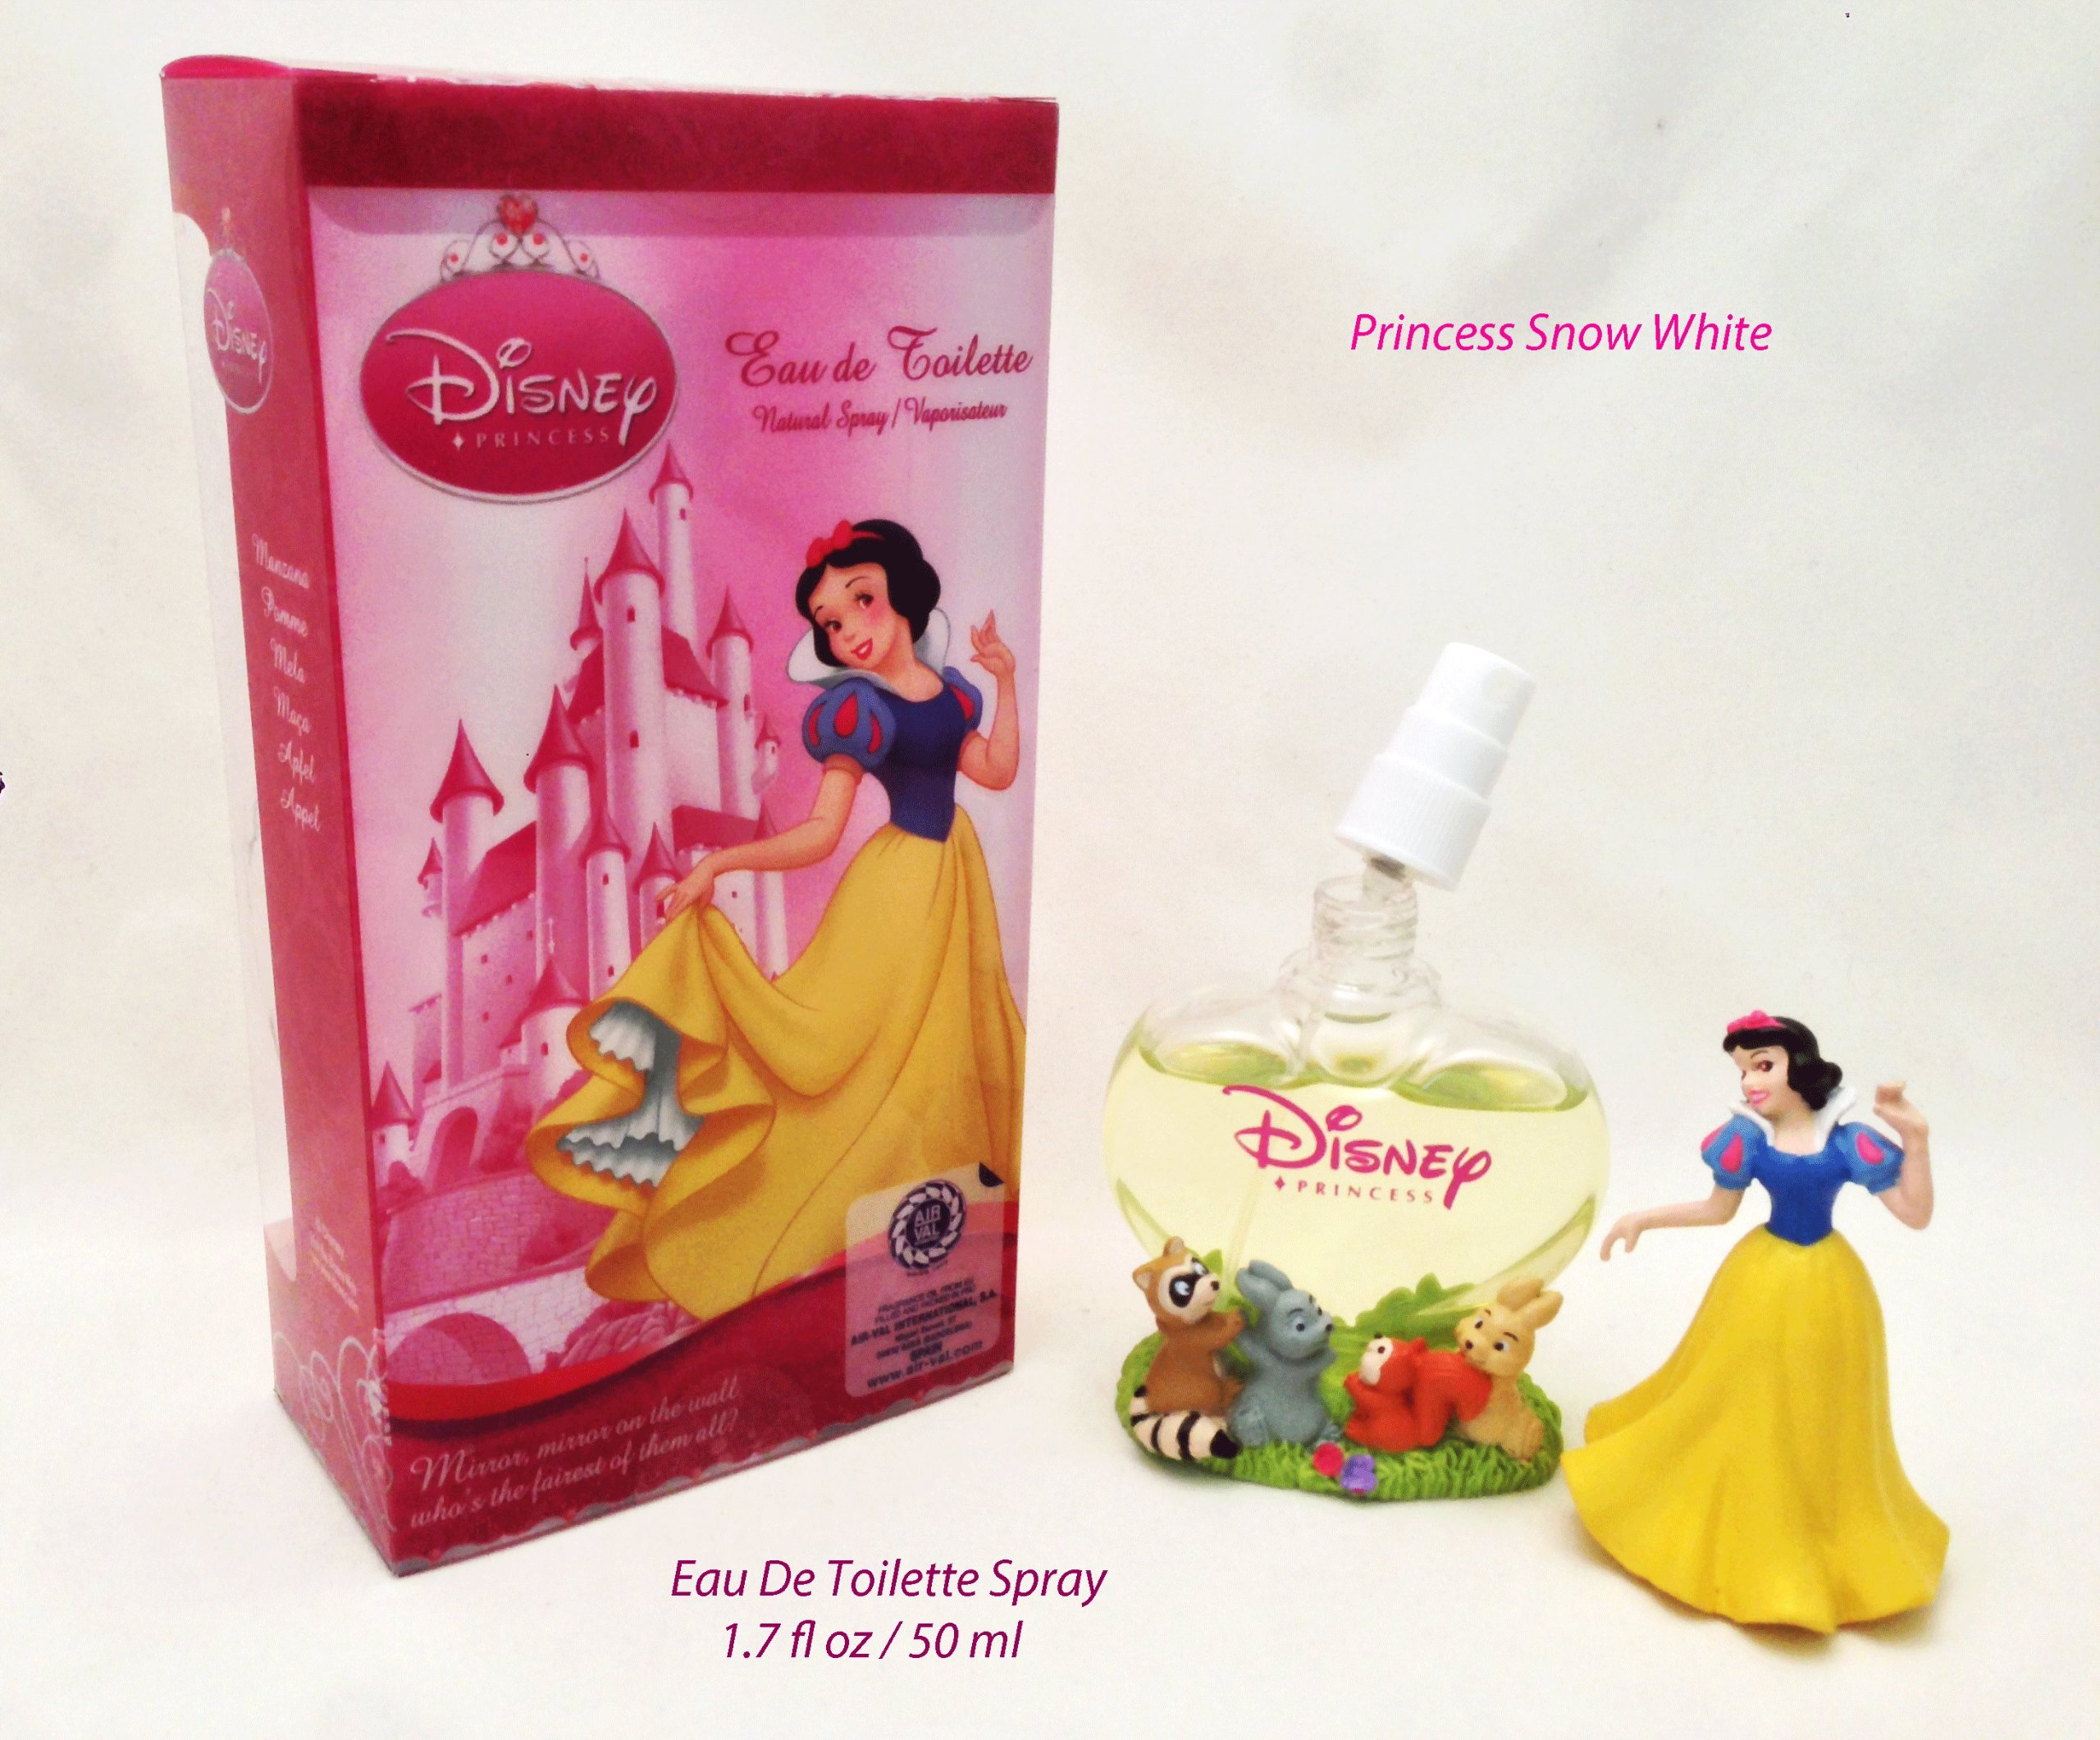 Disney Princess Snow White (Refillable Bottle) For Girls, Kids Eau De Toilette Spray 1.7 oz / 50 ml